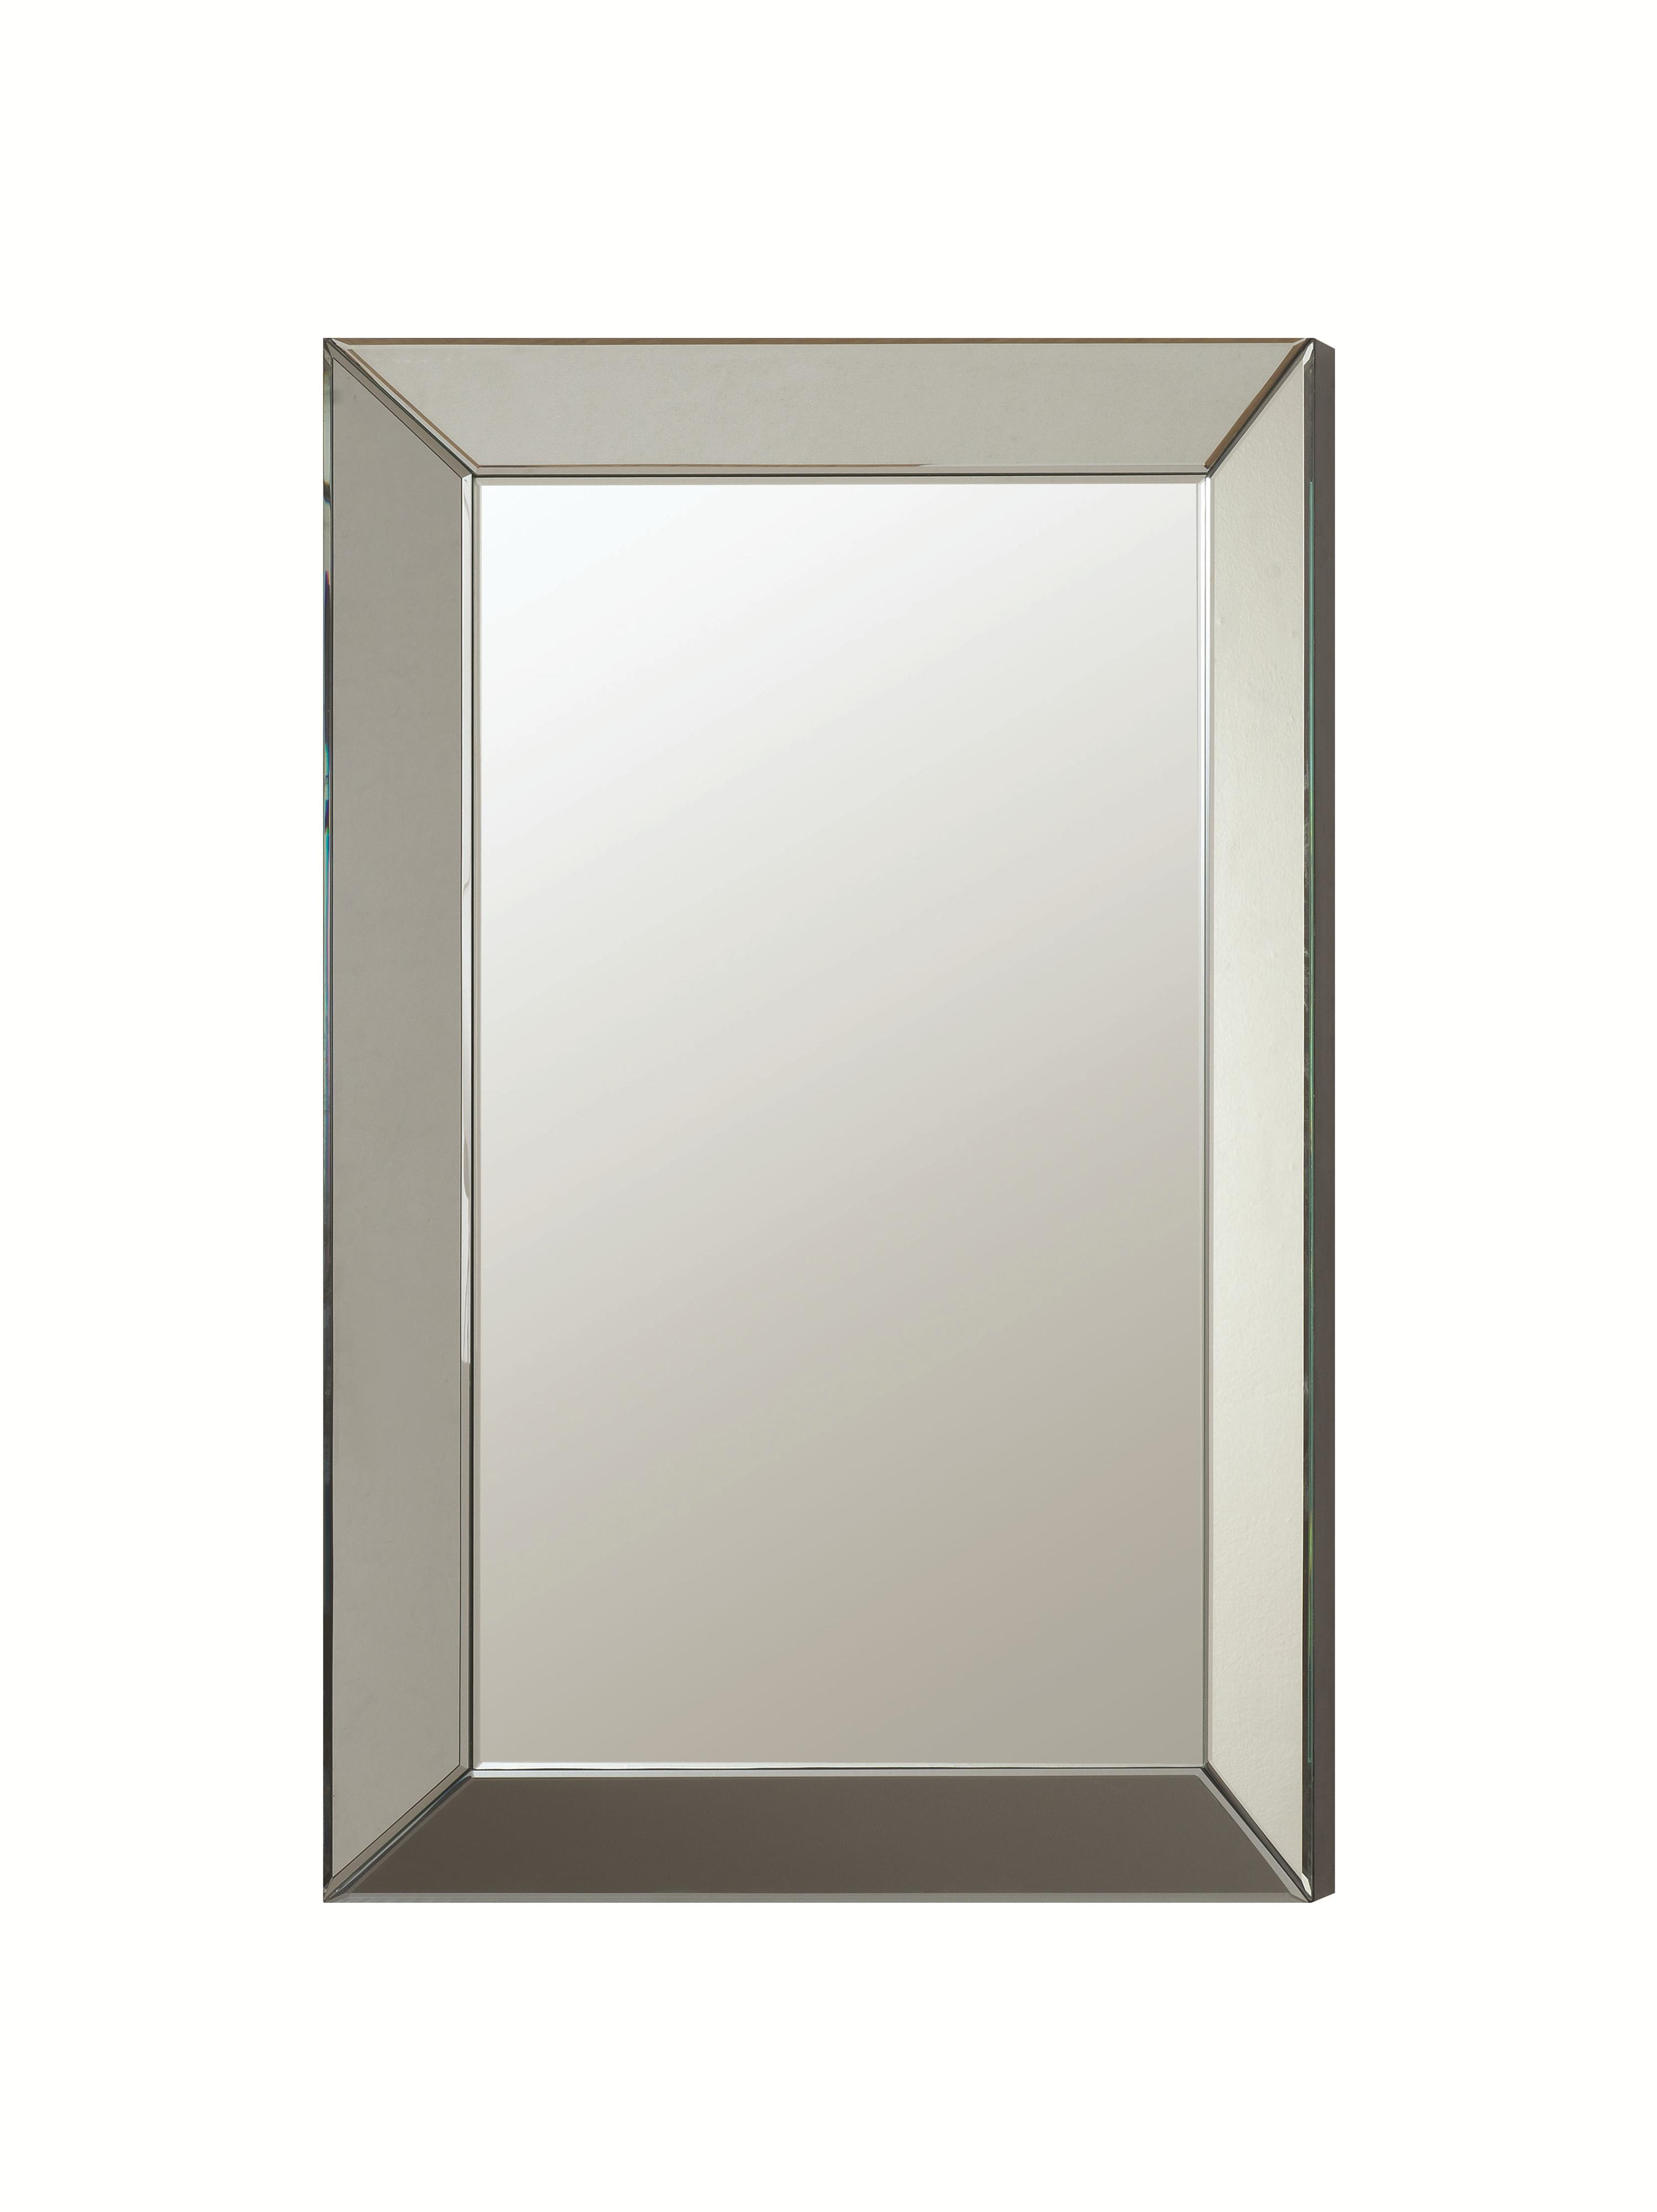 Coaster Accent Mirrors Mirror - Item Number: 901783